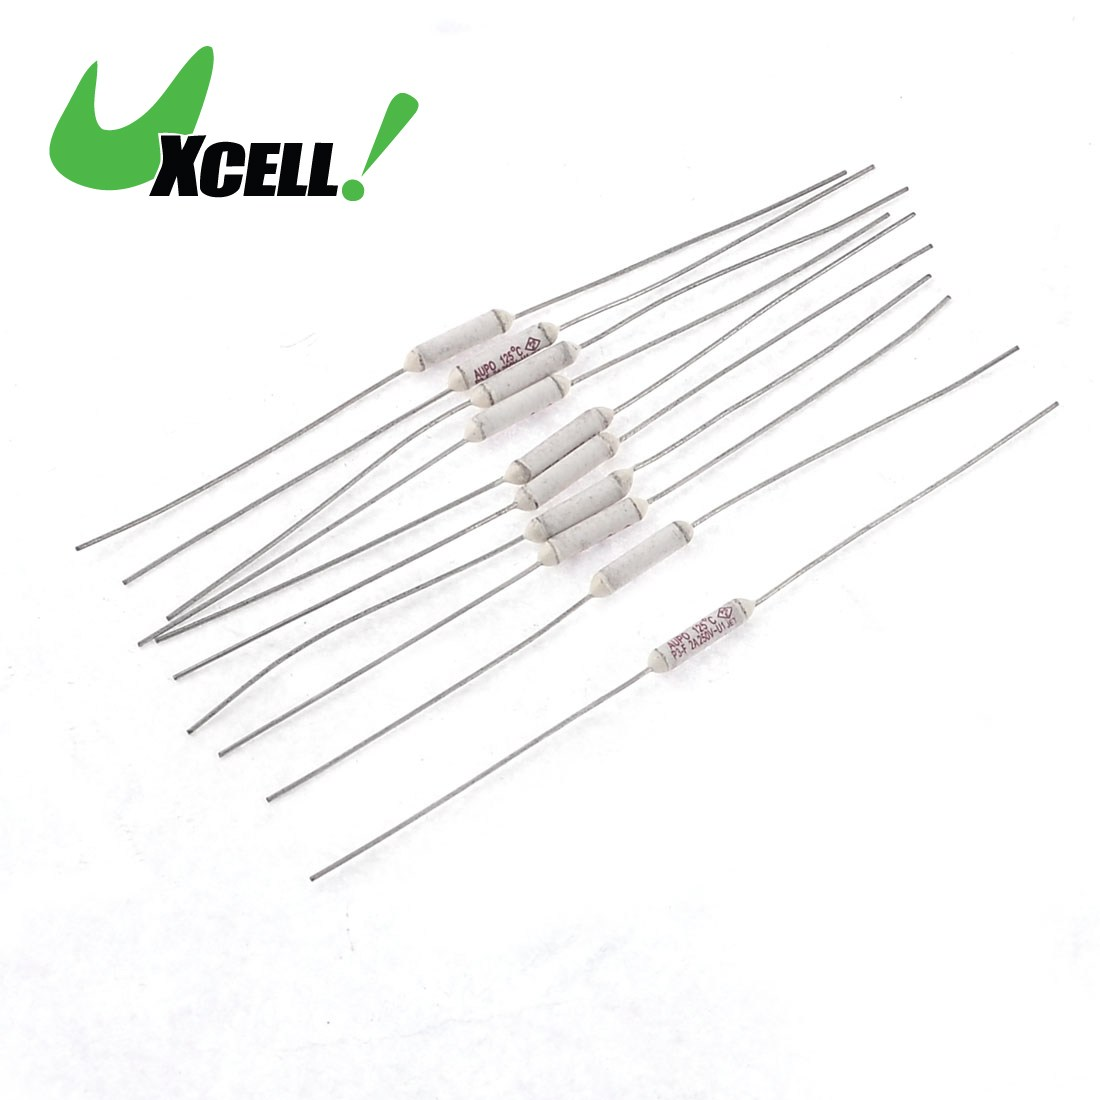 Aliexpress Buy Uxcell Hot Sale 10pcs Lot 250v 2a 125 Celsius Cylinder Circuit Cut Off